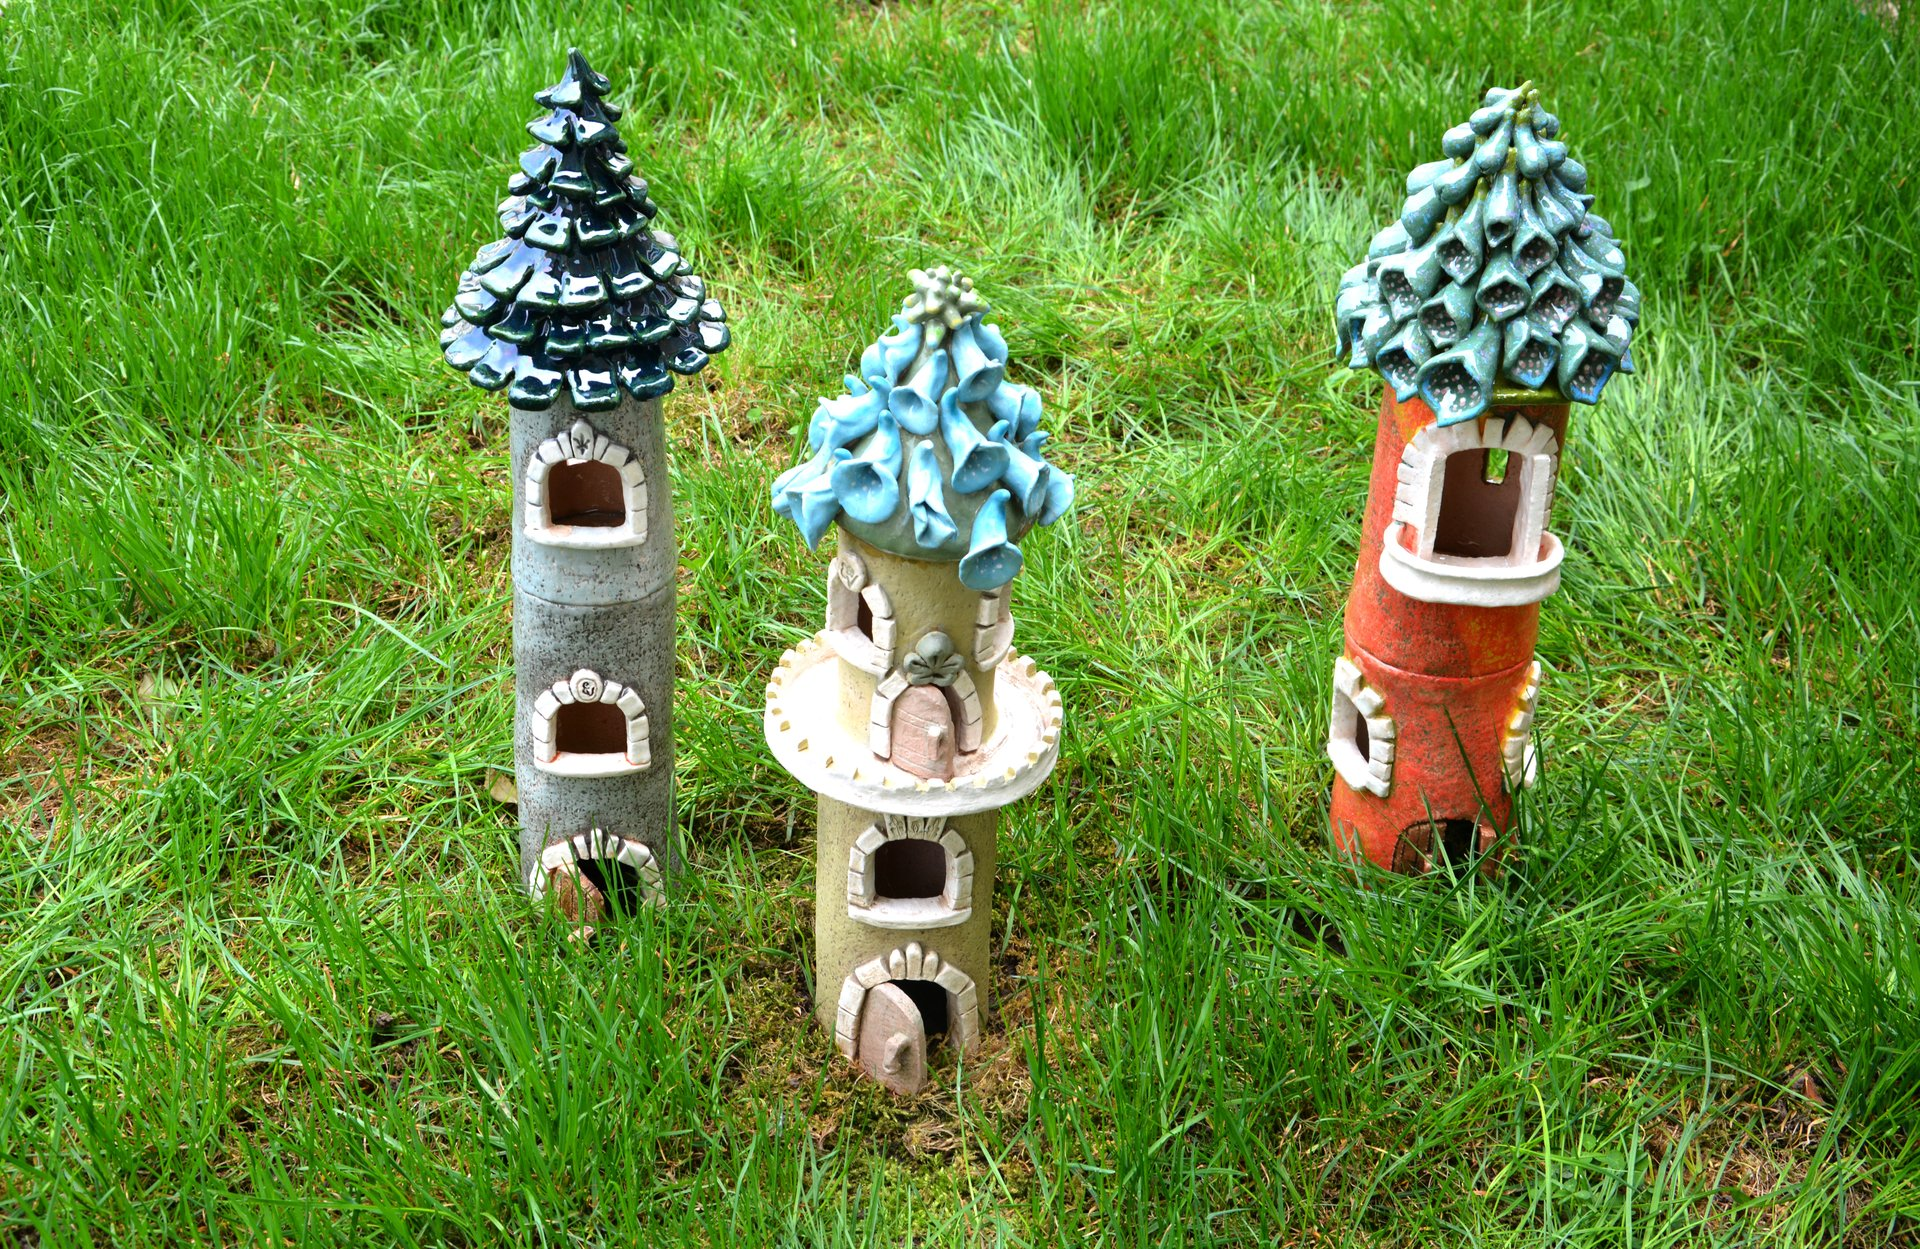 Flower Castels - Ceramic decorations for flowerbeds, lawns, height 39 cm - 44 cm, photo 1 of 2.